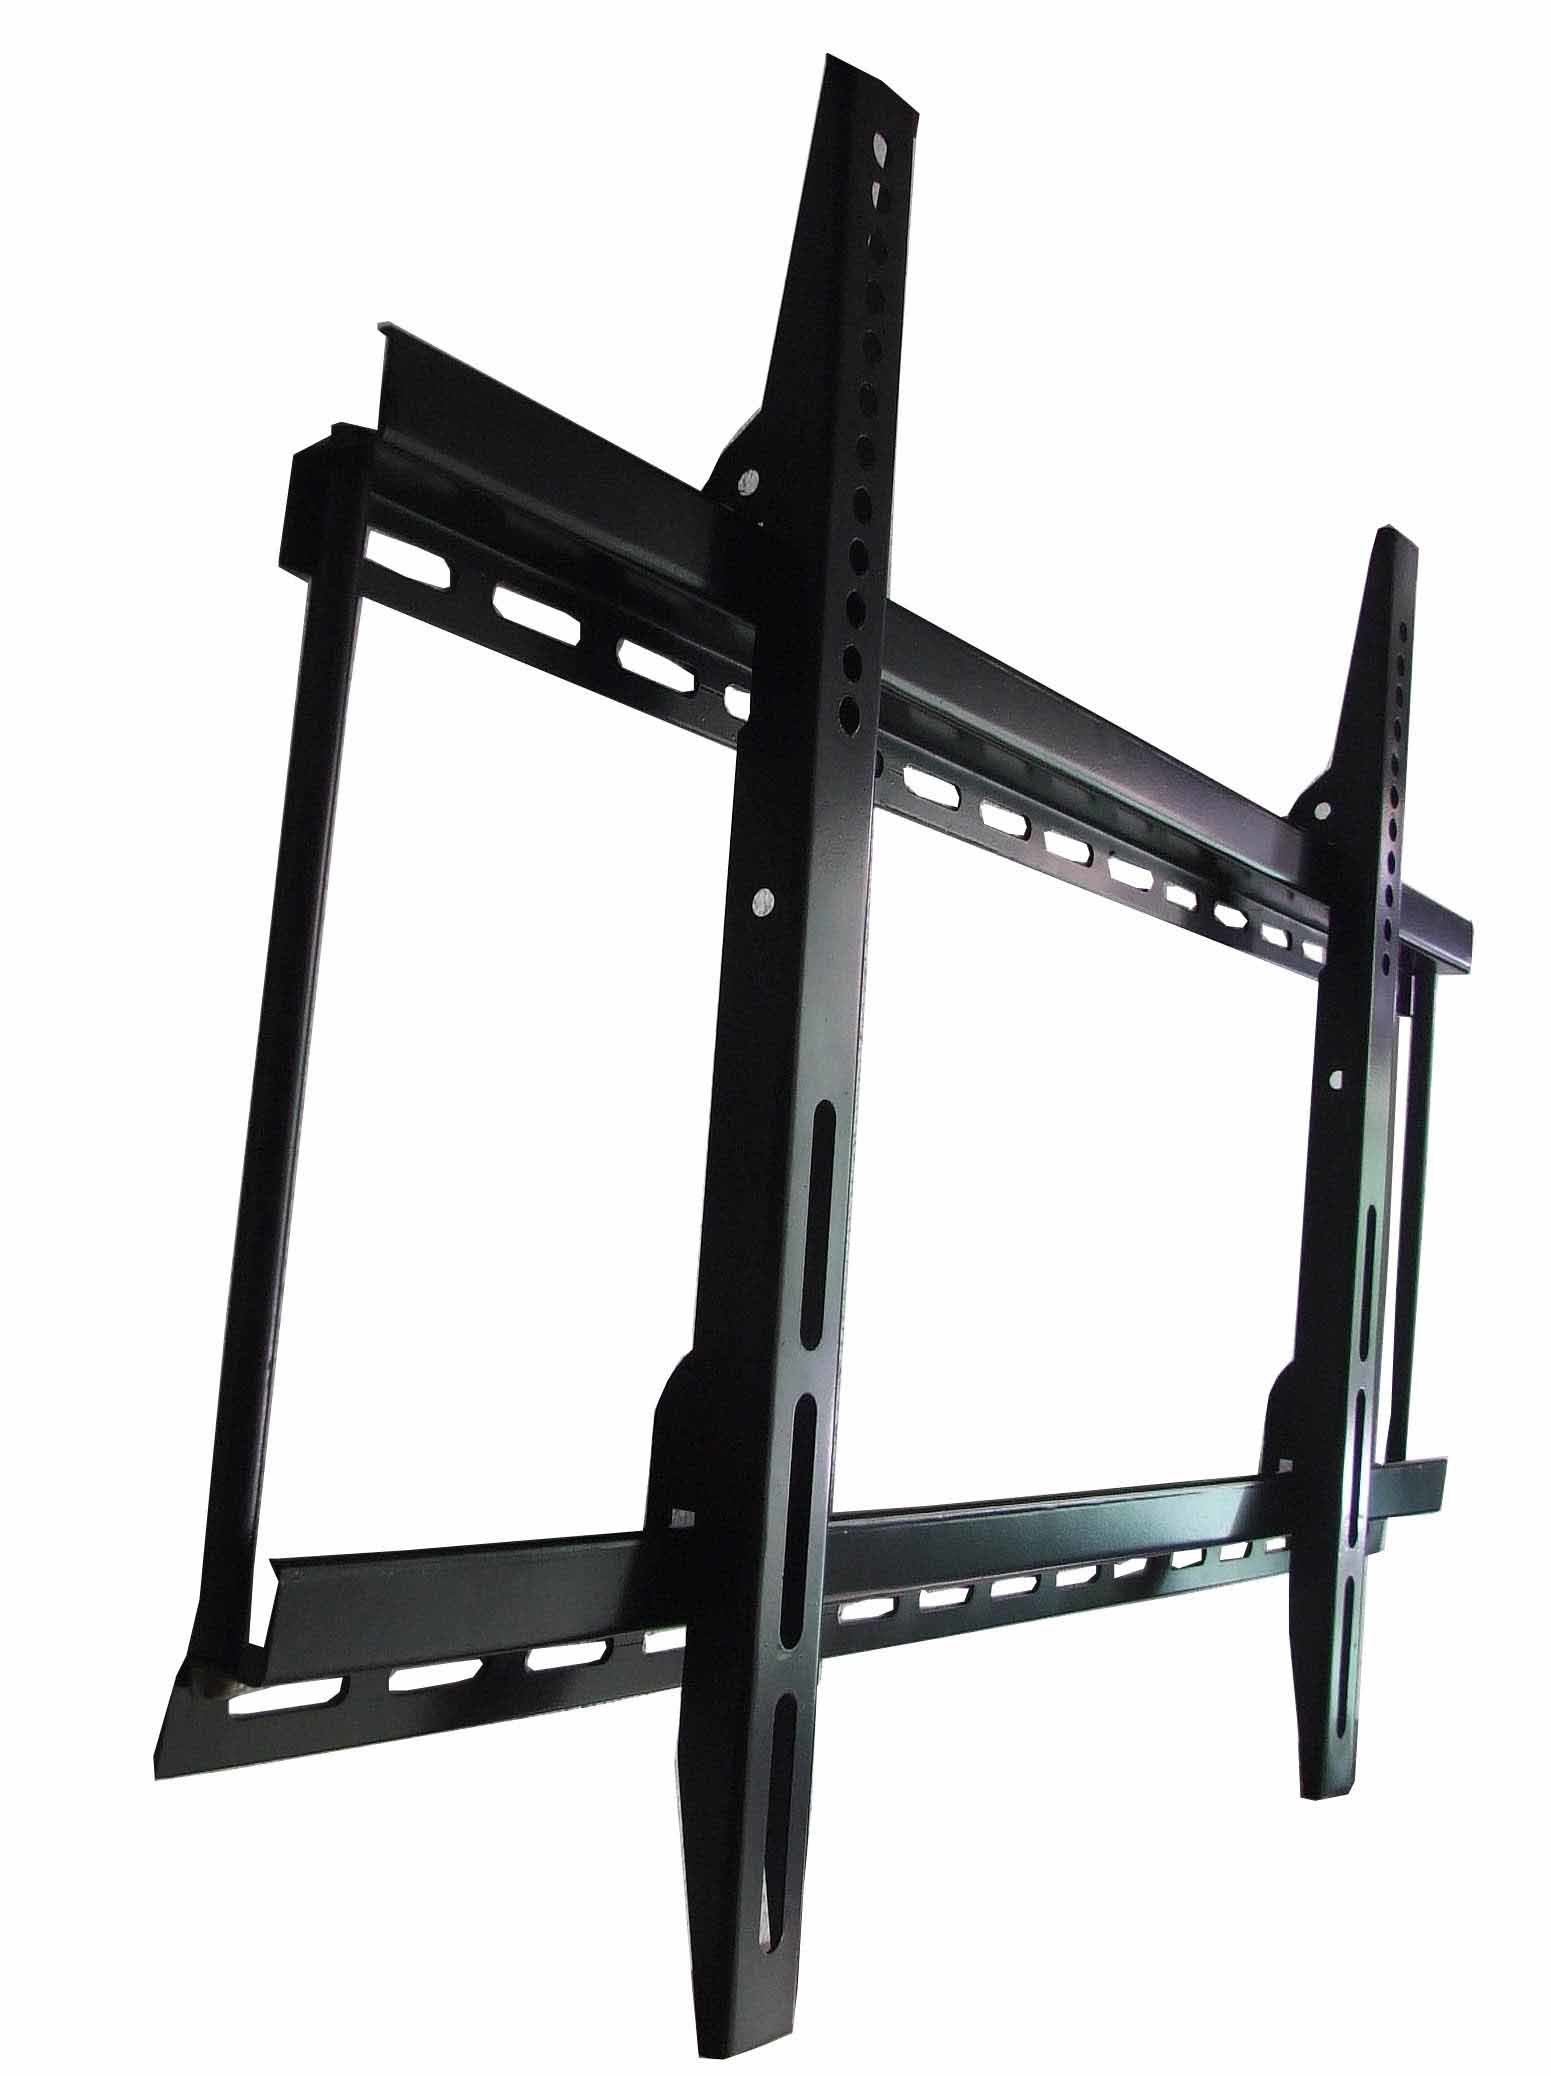 Tv Wall Mount For Patio: China Black Tv Stand, Bracket